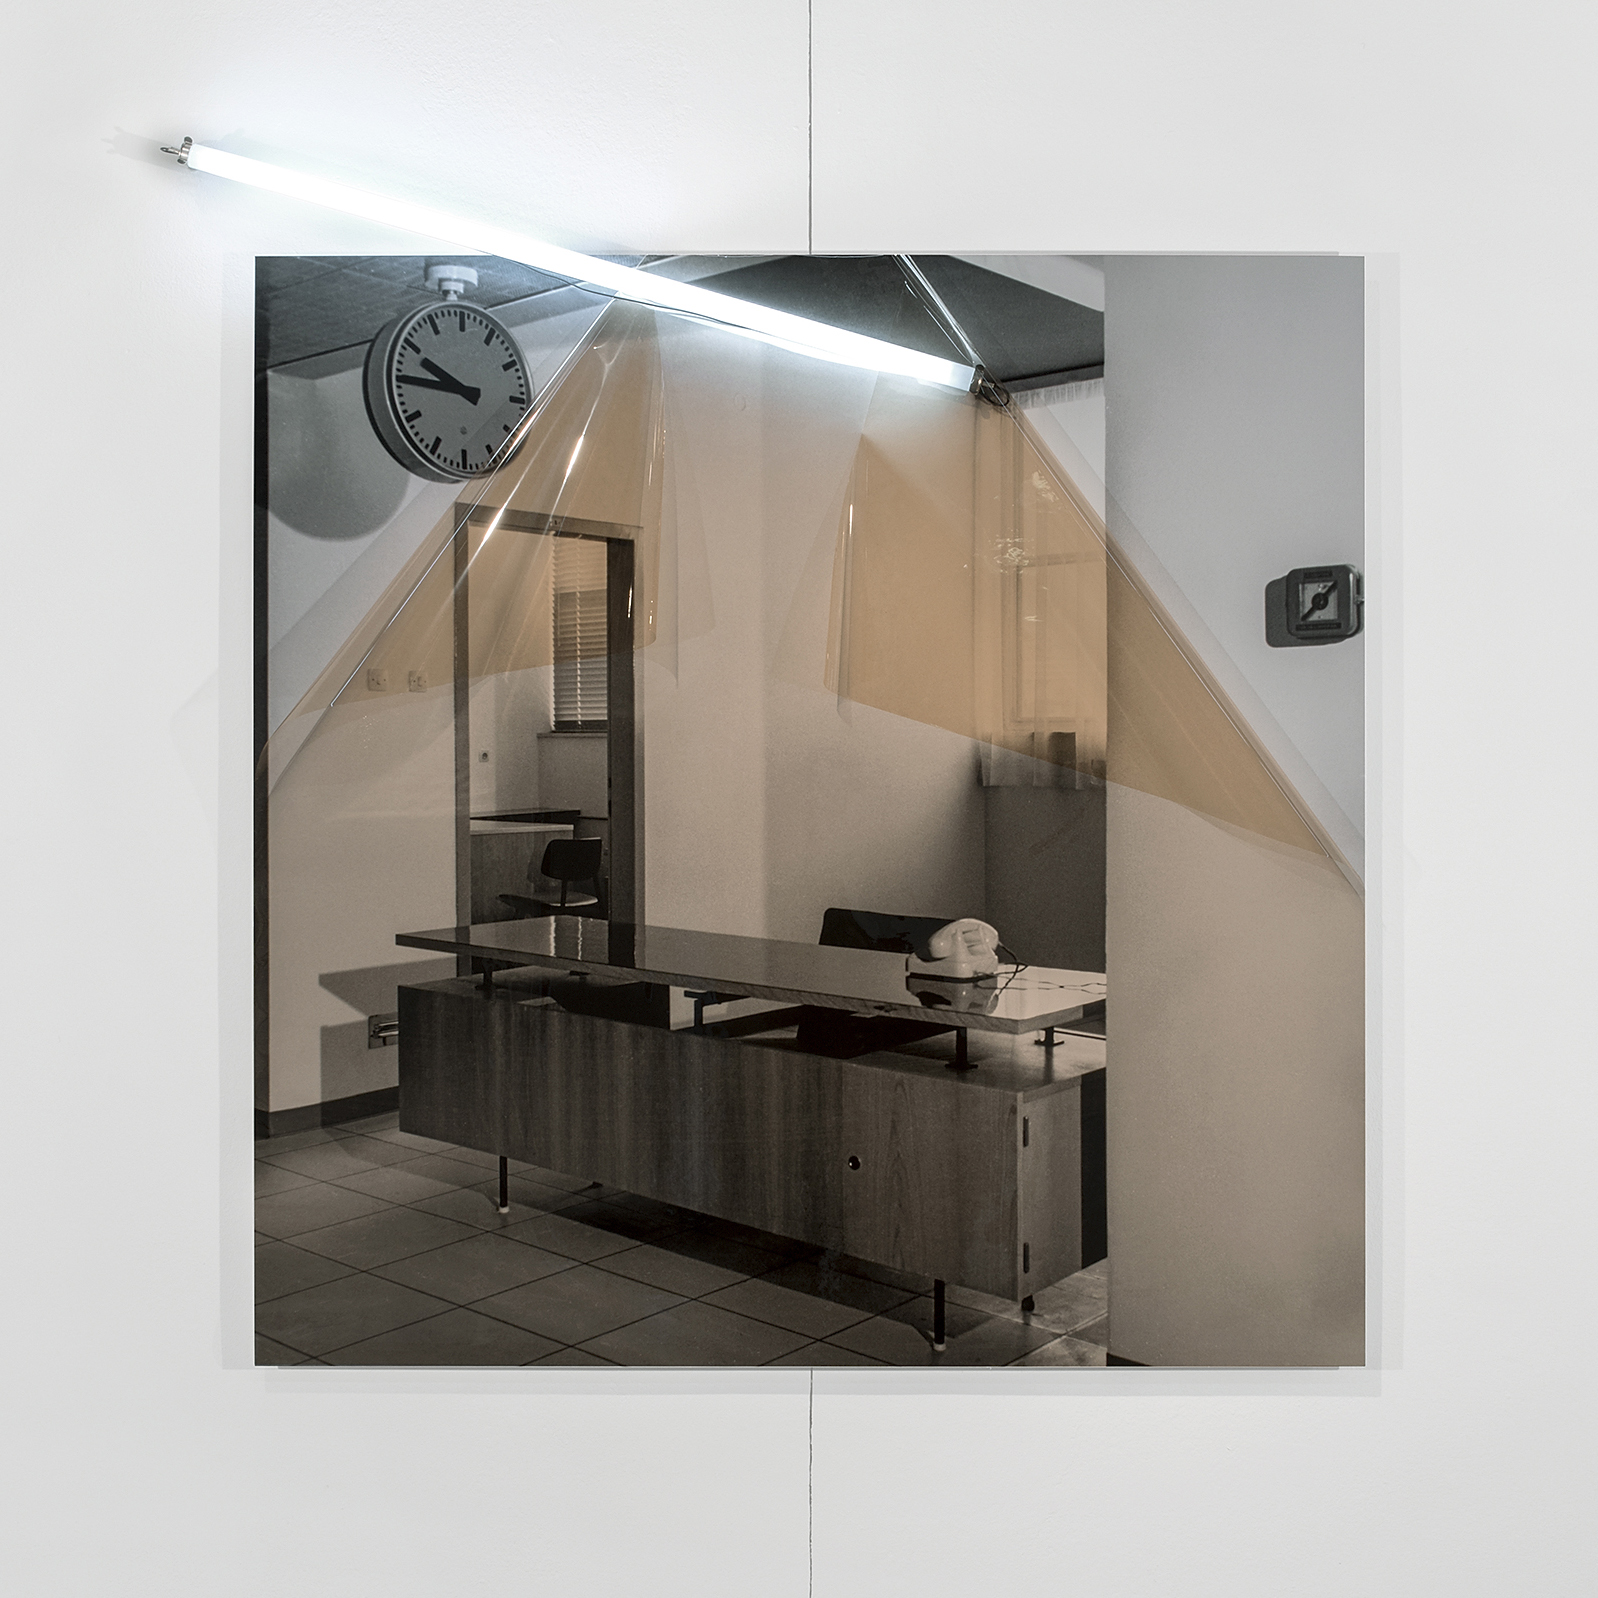 Untitled (Archive ST3: Military Hospital) , 2017  Inkjet print on archival paper mounted on aluminum composite panel, color correction filter, fluorescent light tube, electrical fittings.  47.24 x 47.24 x 1.97in. (120 x 120 x 5cm)